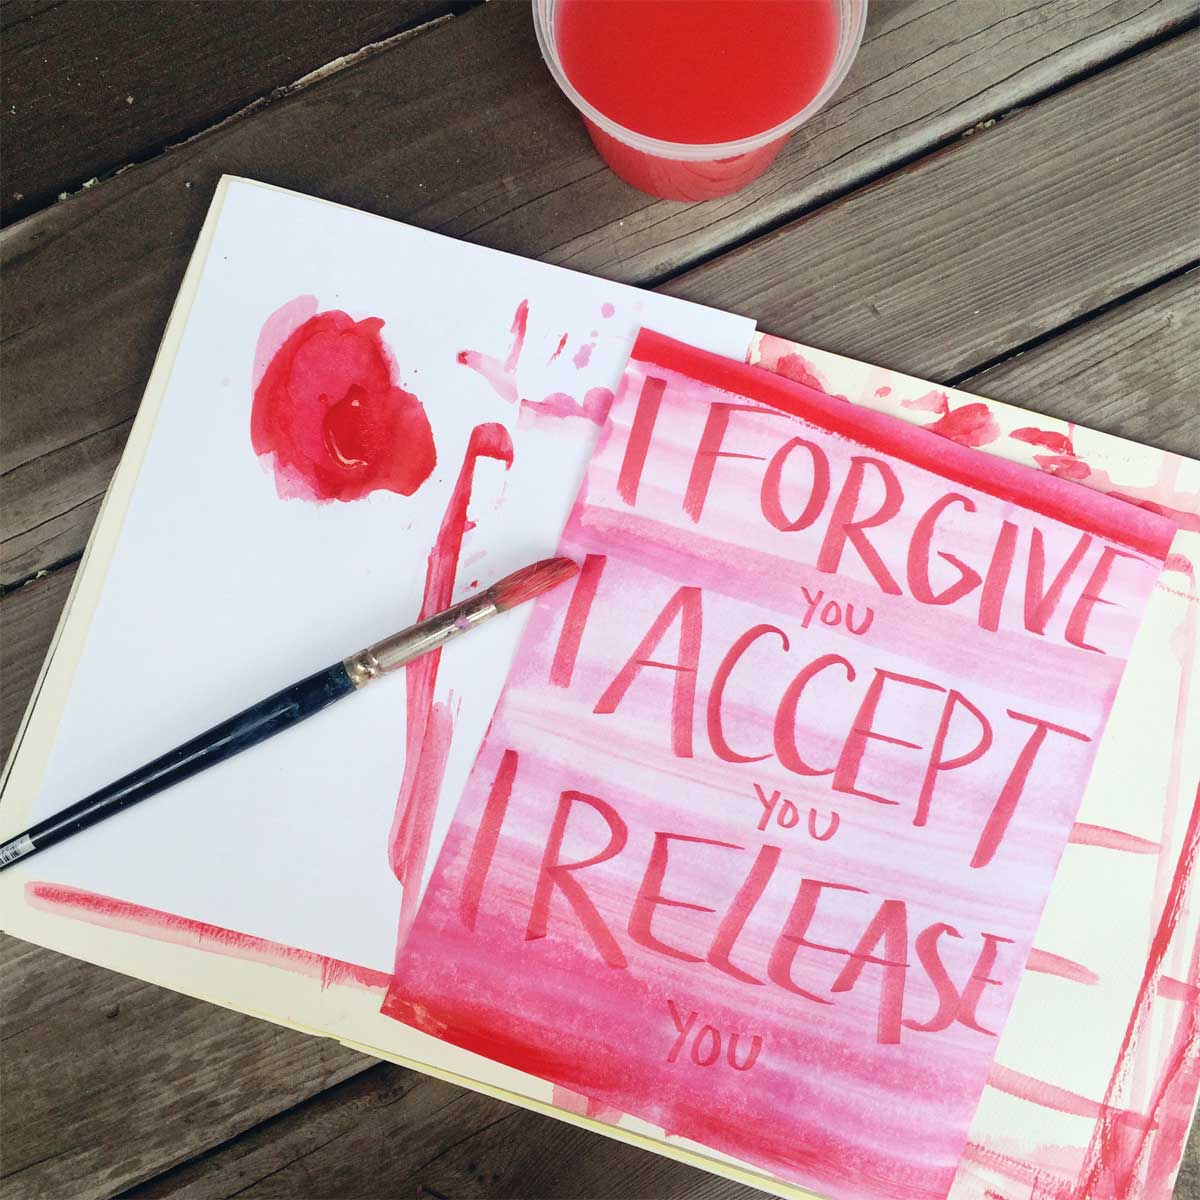 forgiveness, acceptance, and release